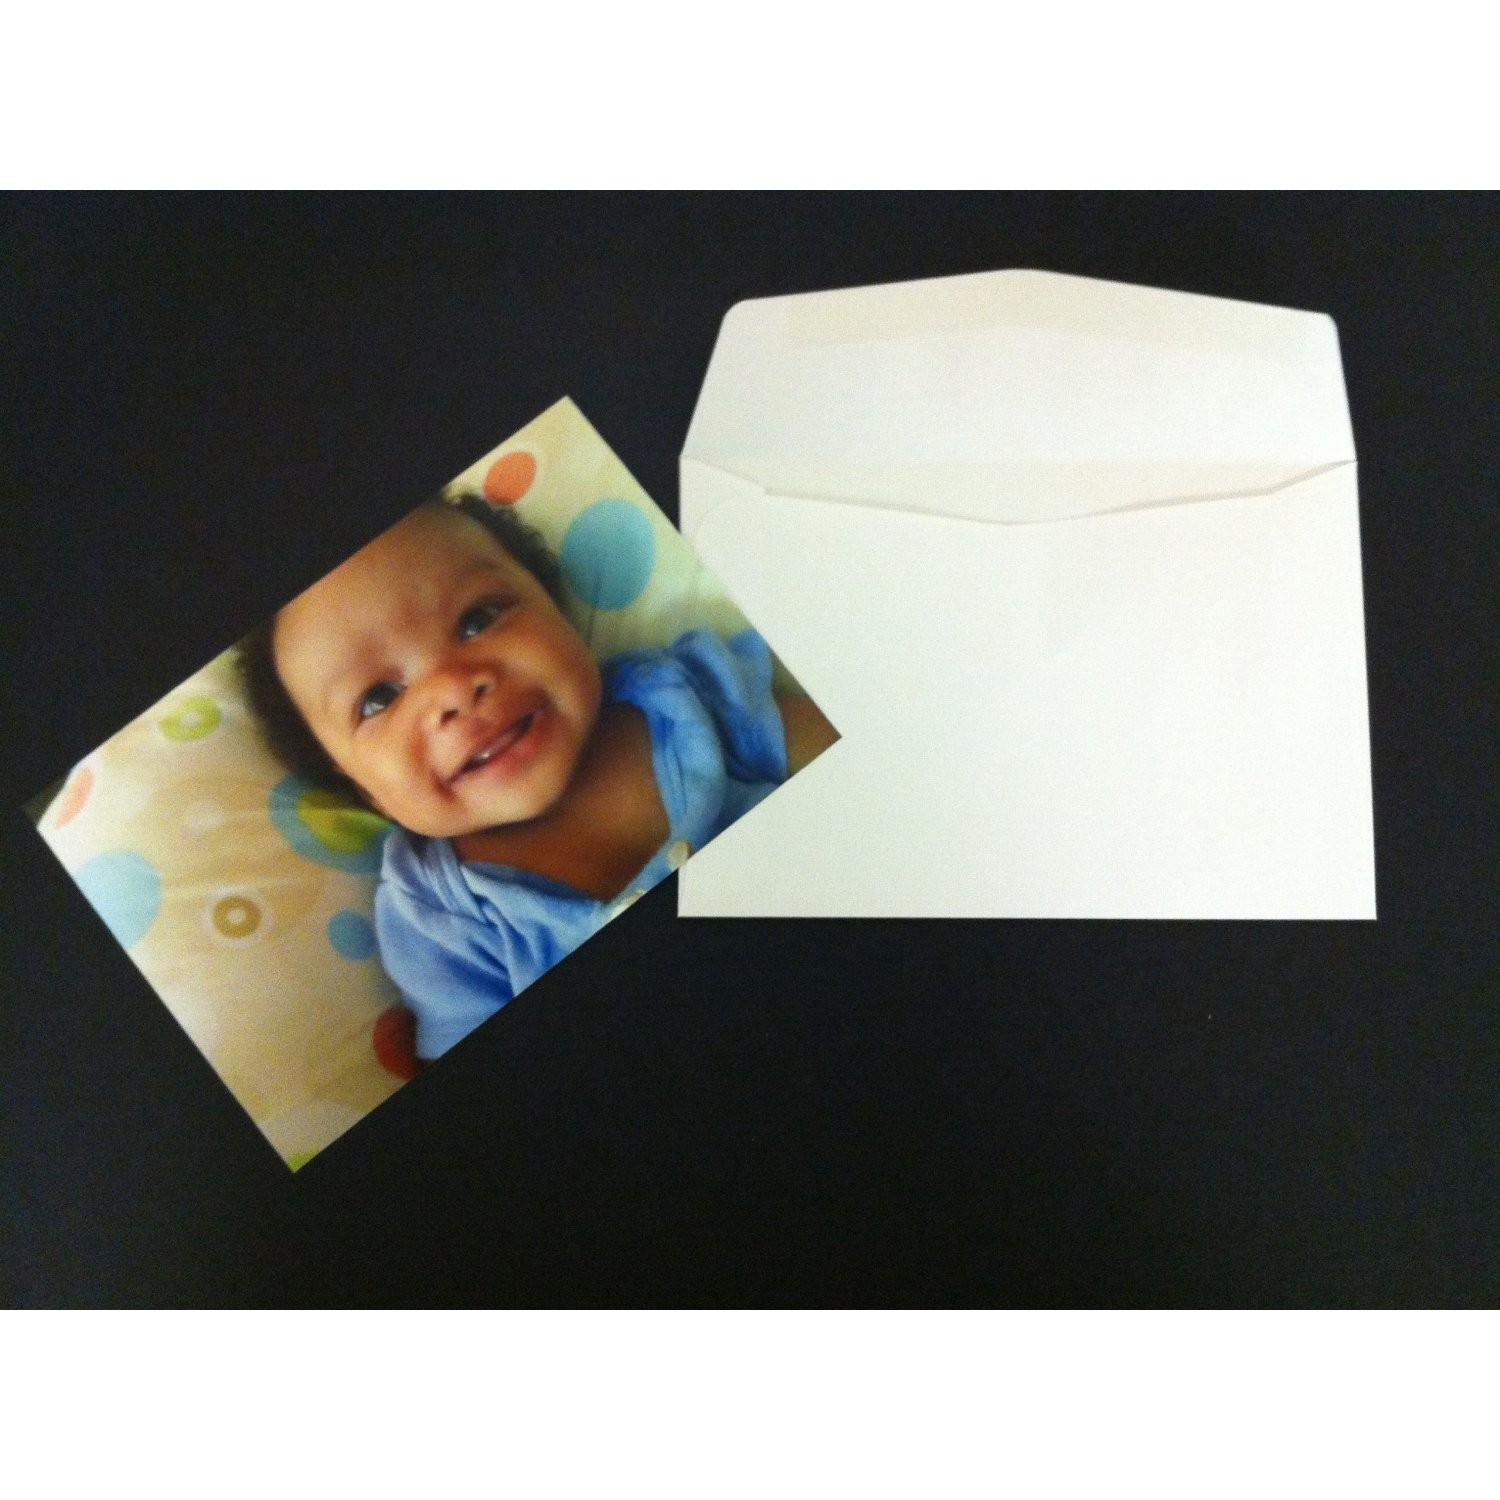 4x6 envelopes for photos and cards